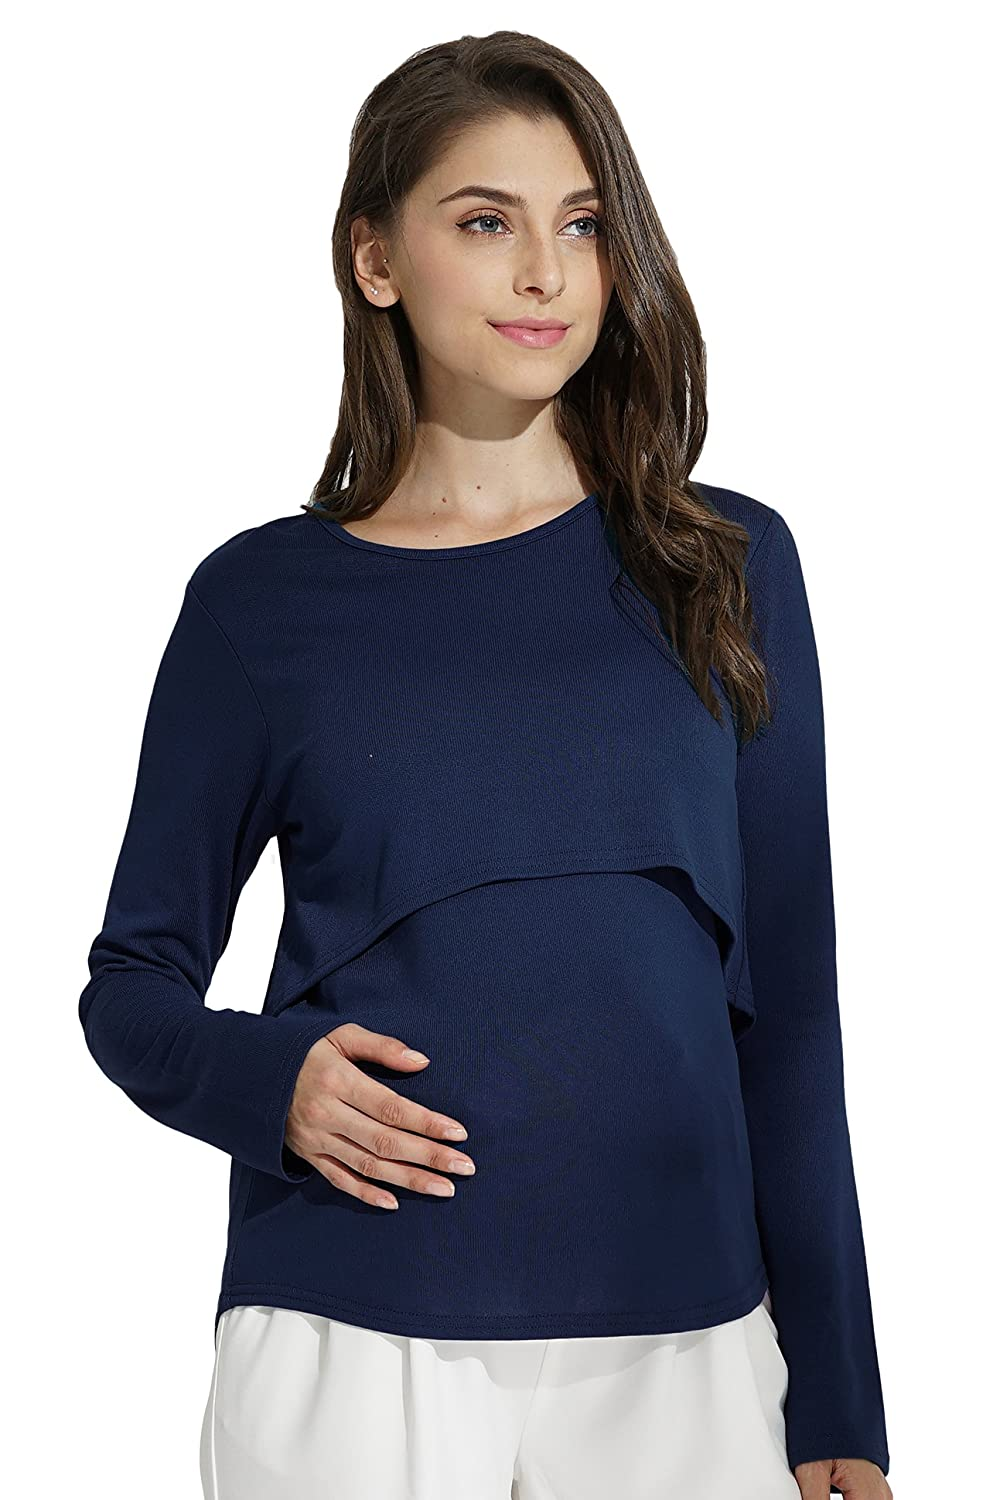 Sweet Mommy Rayon Long Sleeve Layered Maternity and Nursing Top Sweet Mommy Co. Ltd st7007